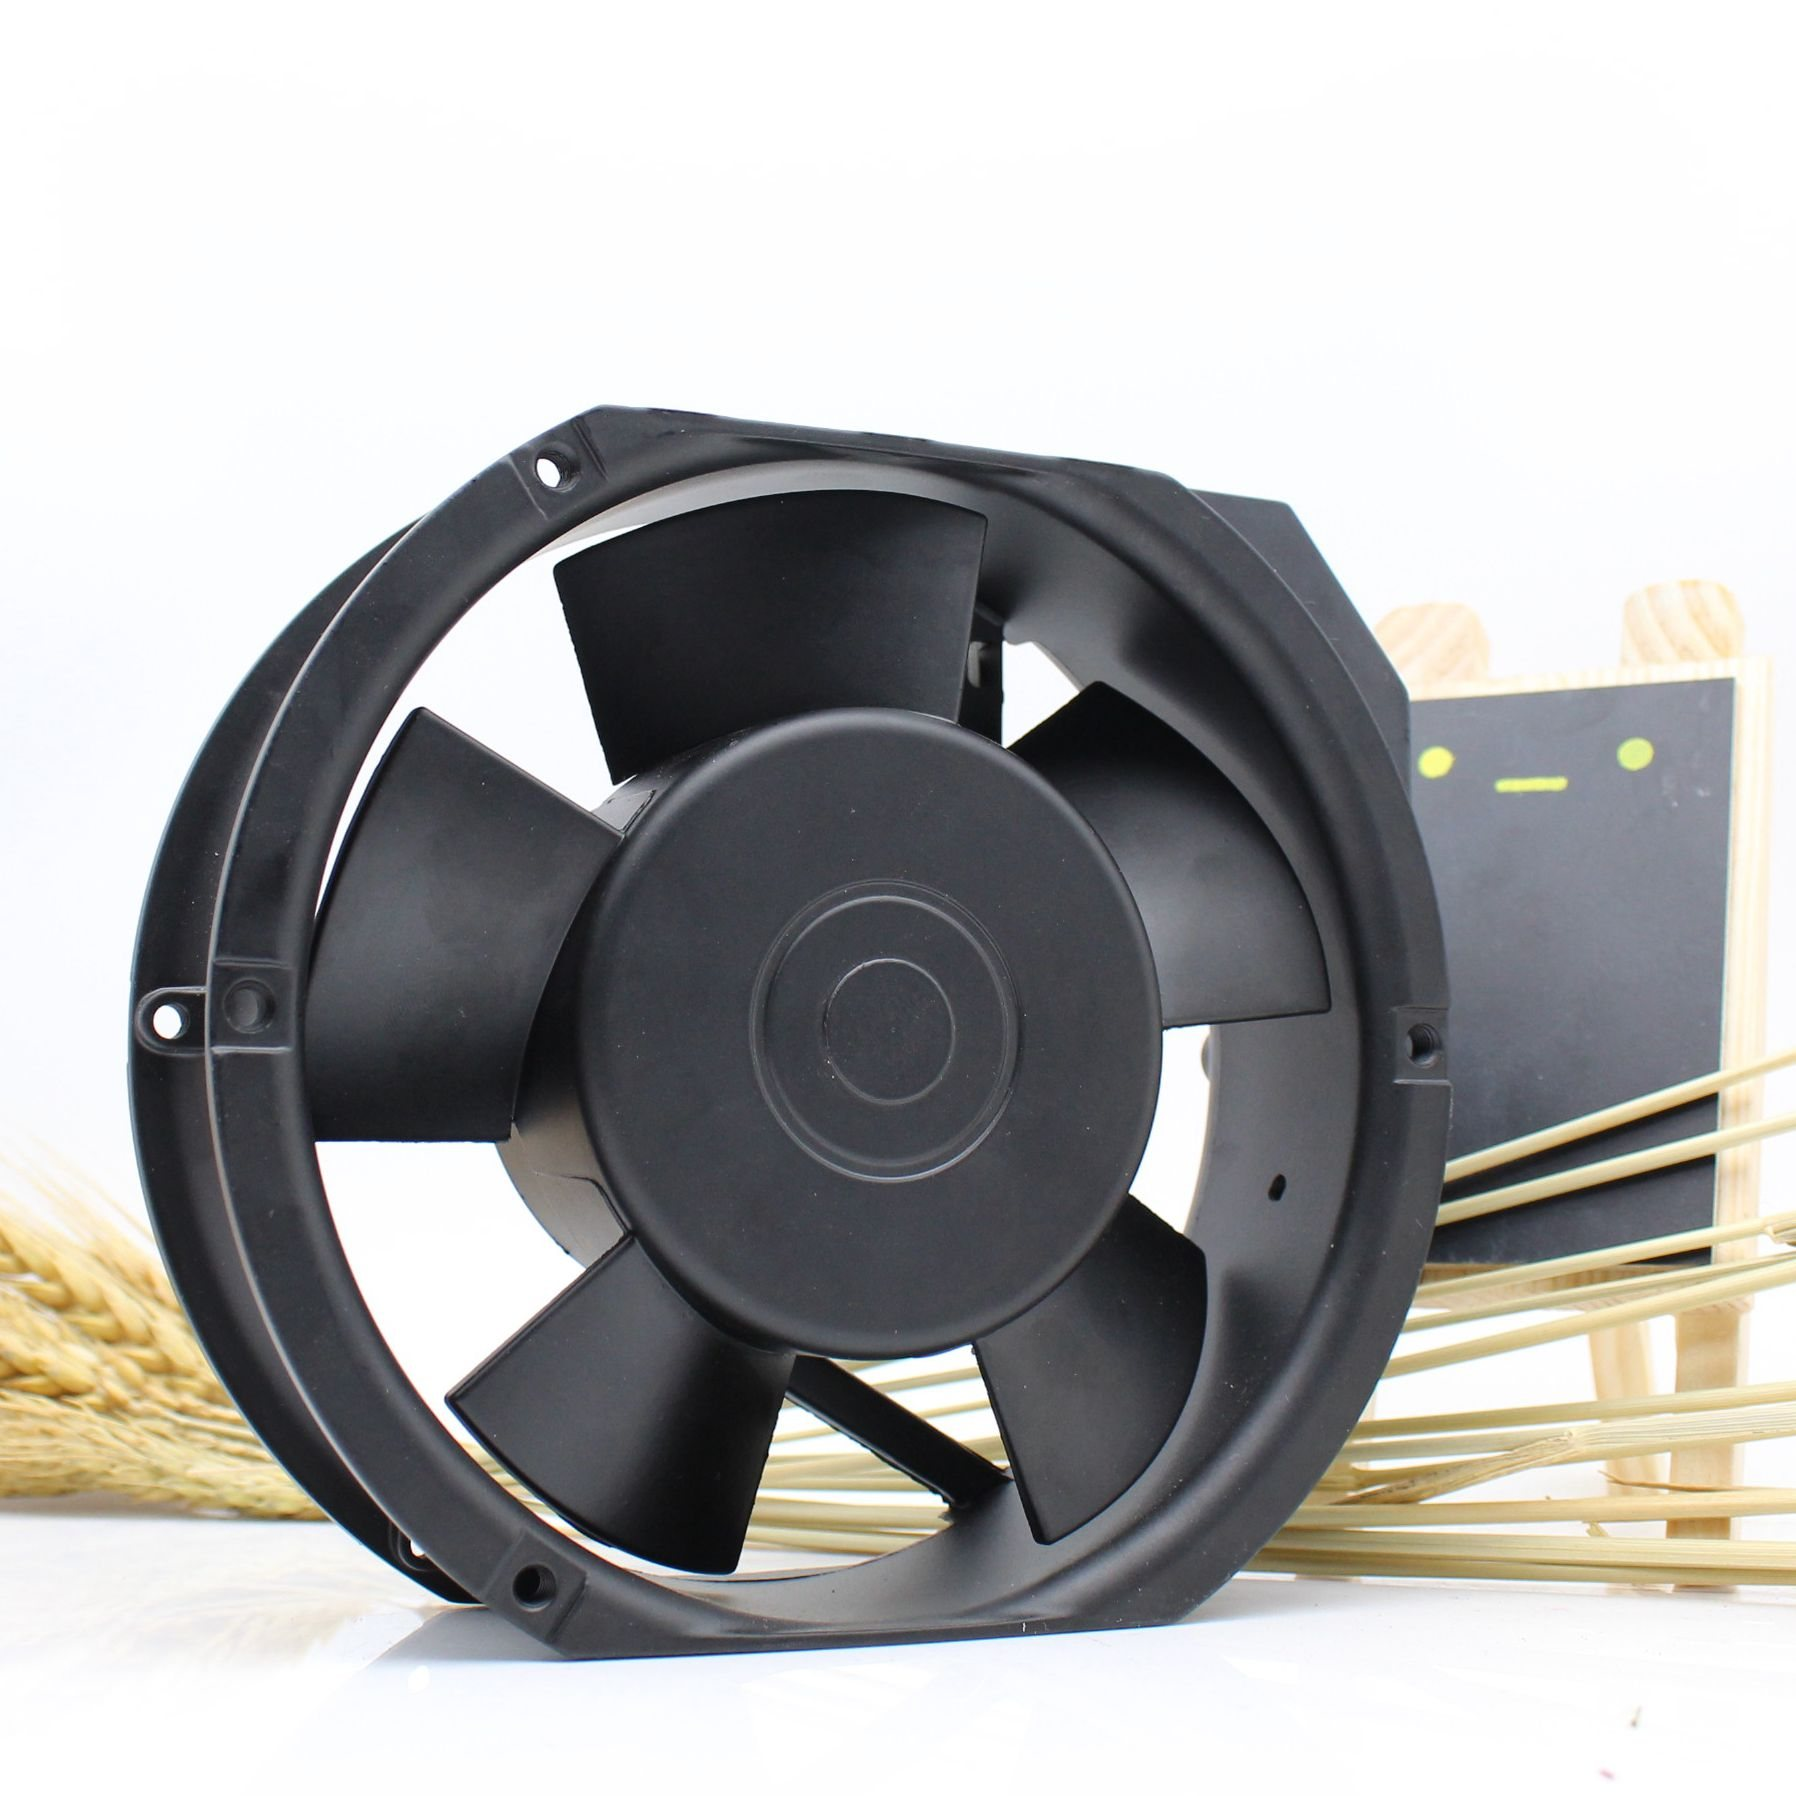 SUNTRONIX SJ1725HA1 0.45A Ball Bearing High Temperature Fan